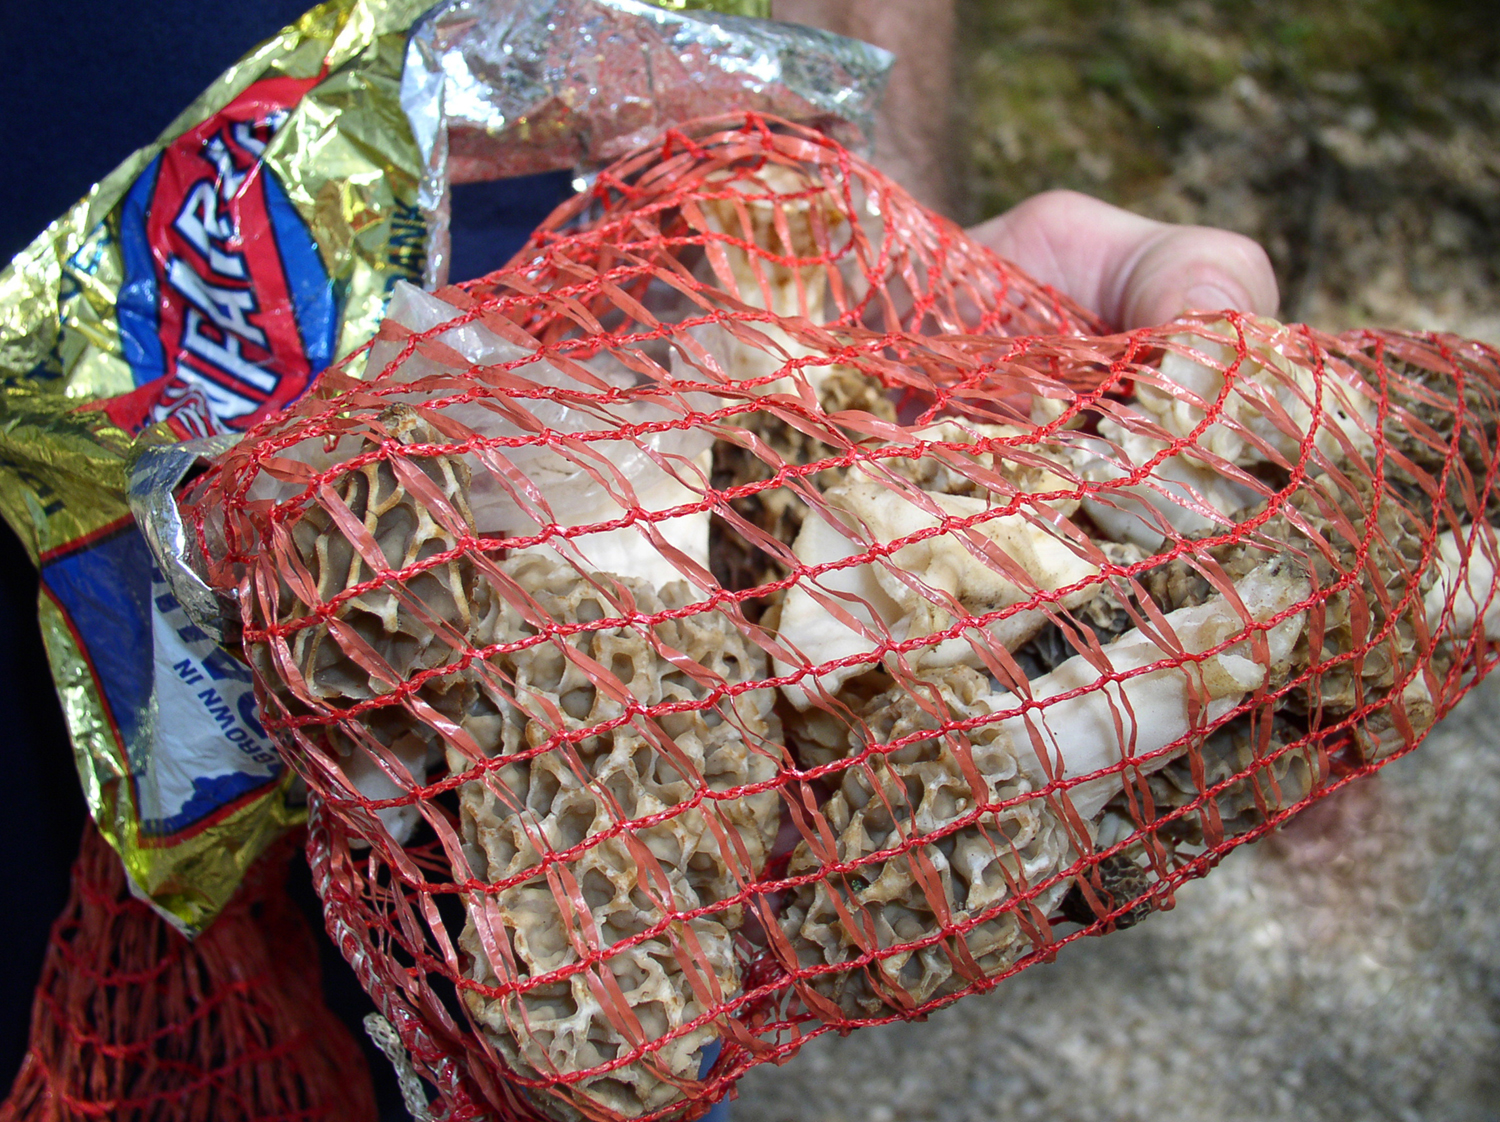 Mesh bags are needed to collect mushrooms at Mammoth Cave NP.